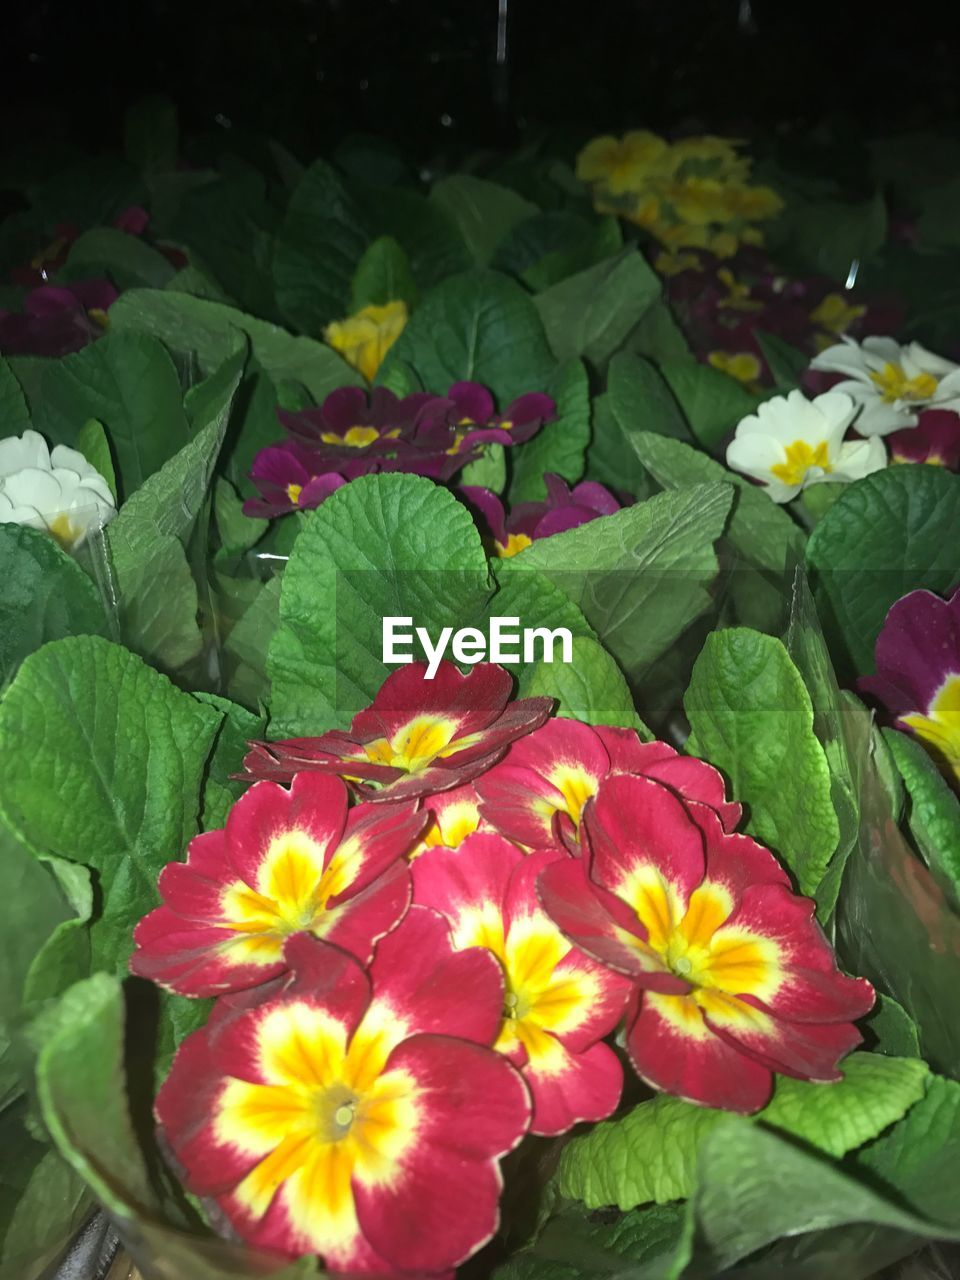 flower, leaf, petal, growth, freshness, beauty in nature, fragility, plant, nature, flower head, no people, green color, outdoors, blooming, day, close-up